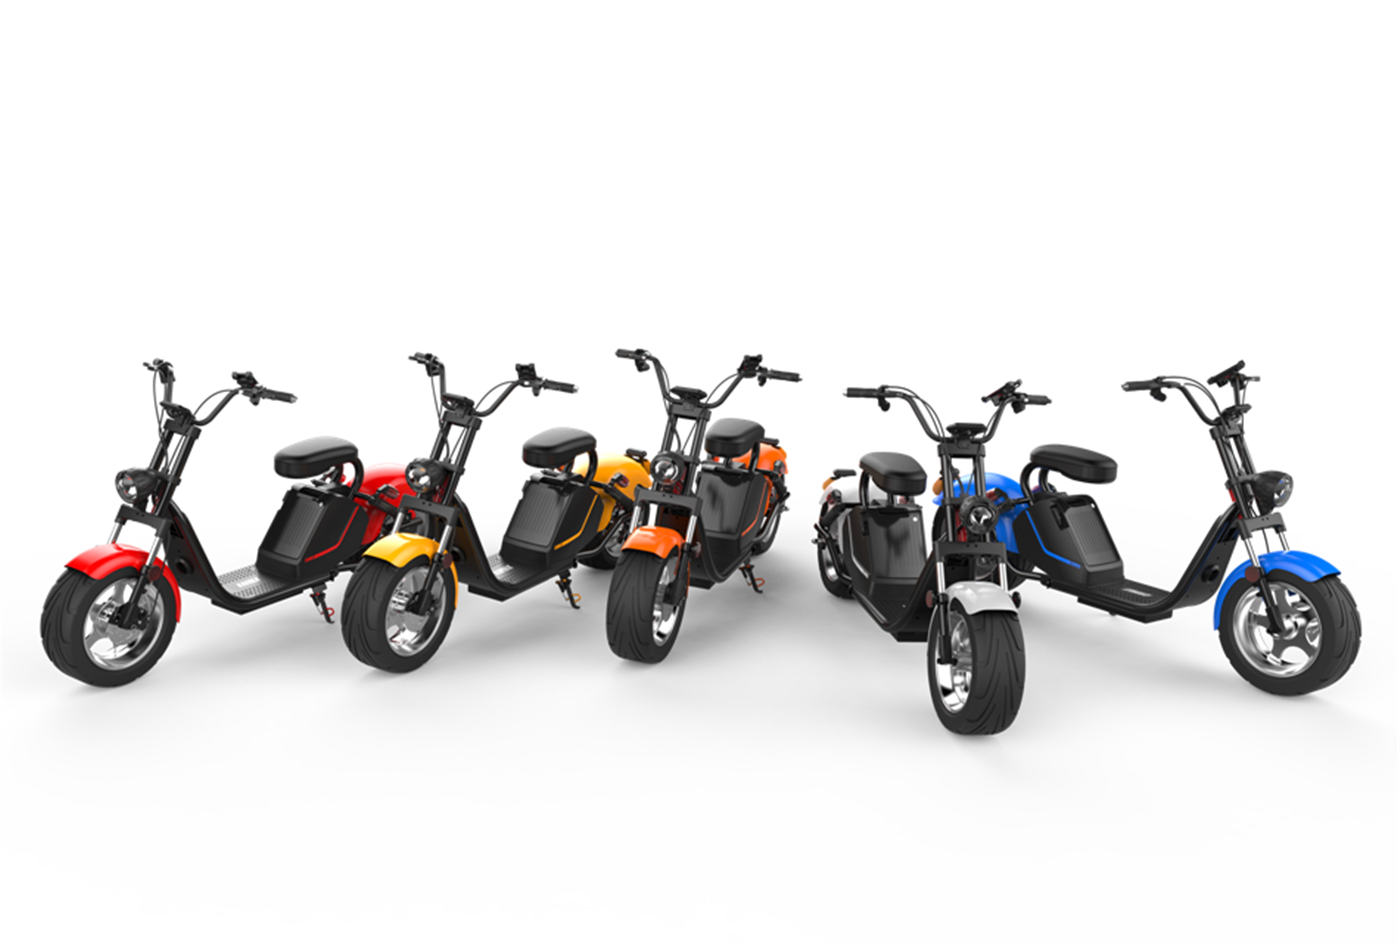 Caigiees-Citycoco-Harley-big-wheel-electric-scooter-with-EEC-approved-from-Rooder-factory-supplier-exhibition-March-Expo-alibaba-Super-September-Purchasing-8.png - 534.93 KB